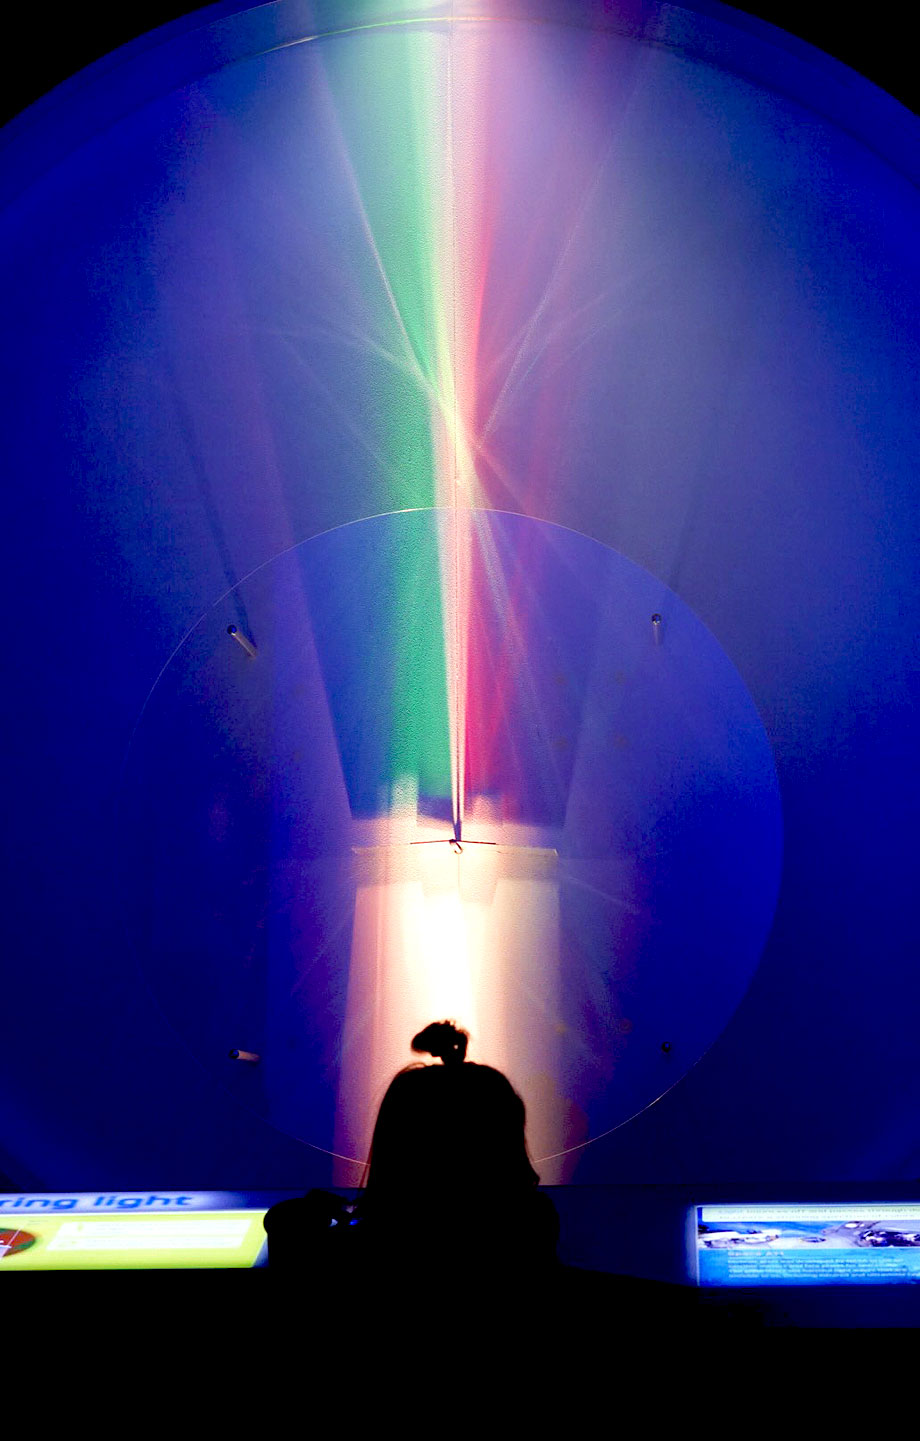 A toddler stands in front of a blue rainbow at MSI in Chicago.